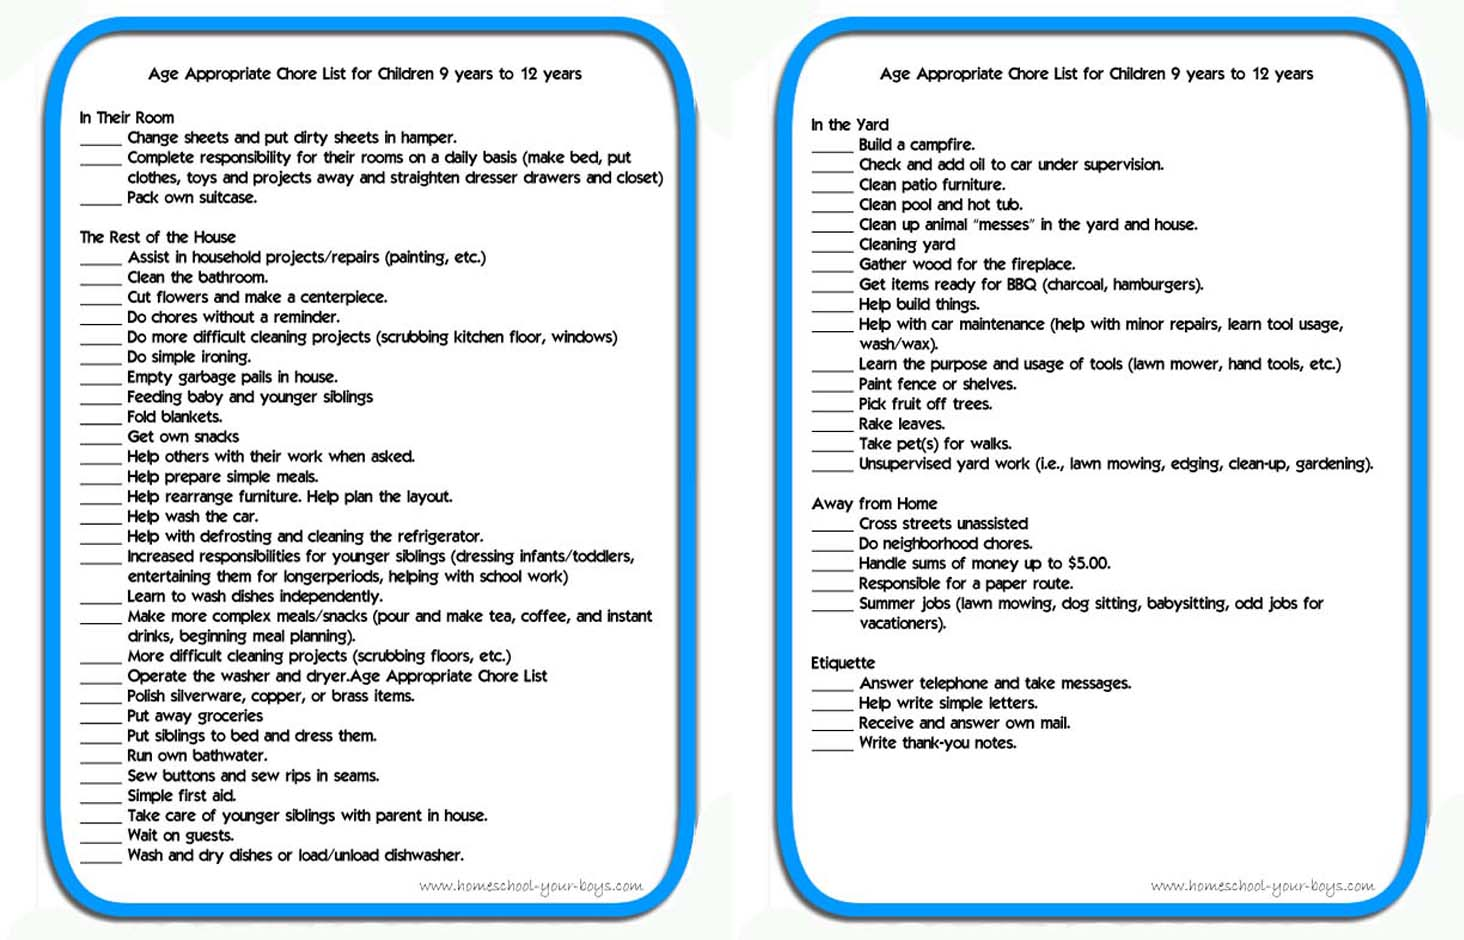 Age Appropriate Chore List For Children 9 Years To 12 Years